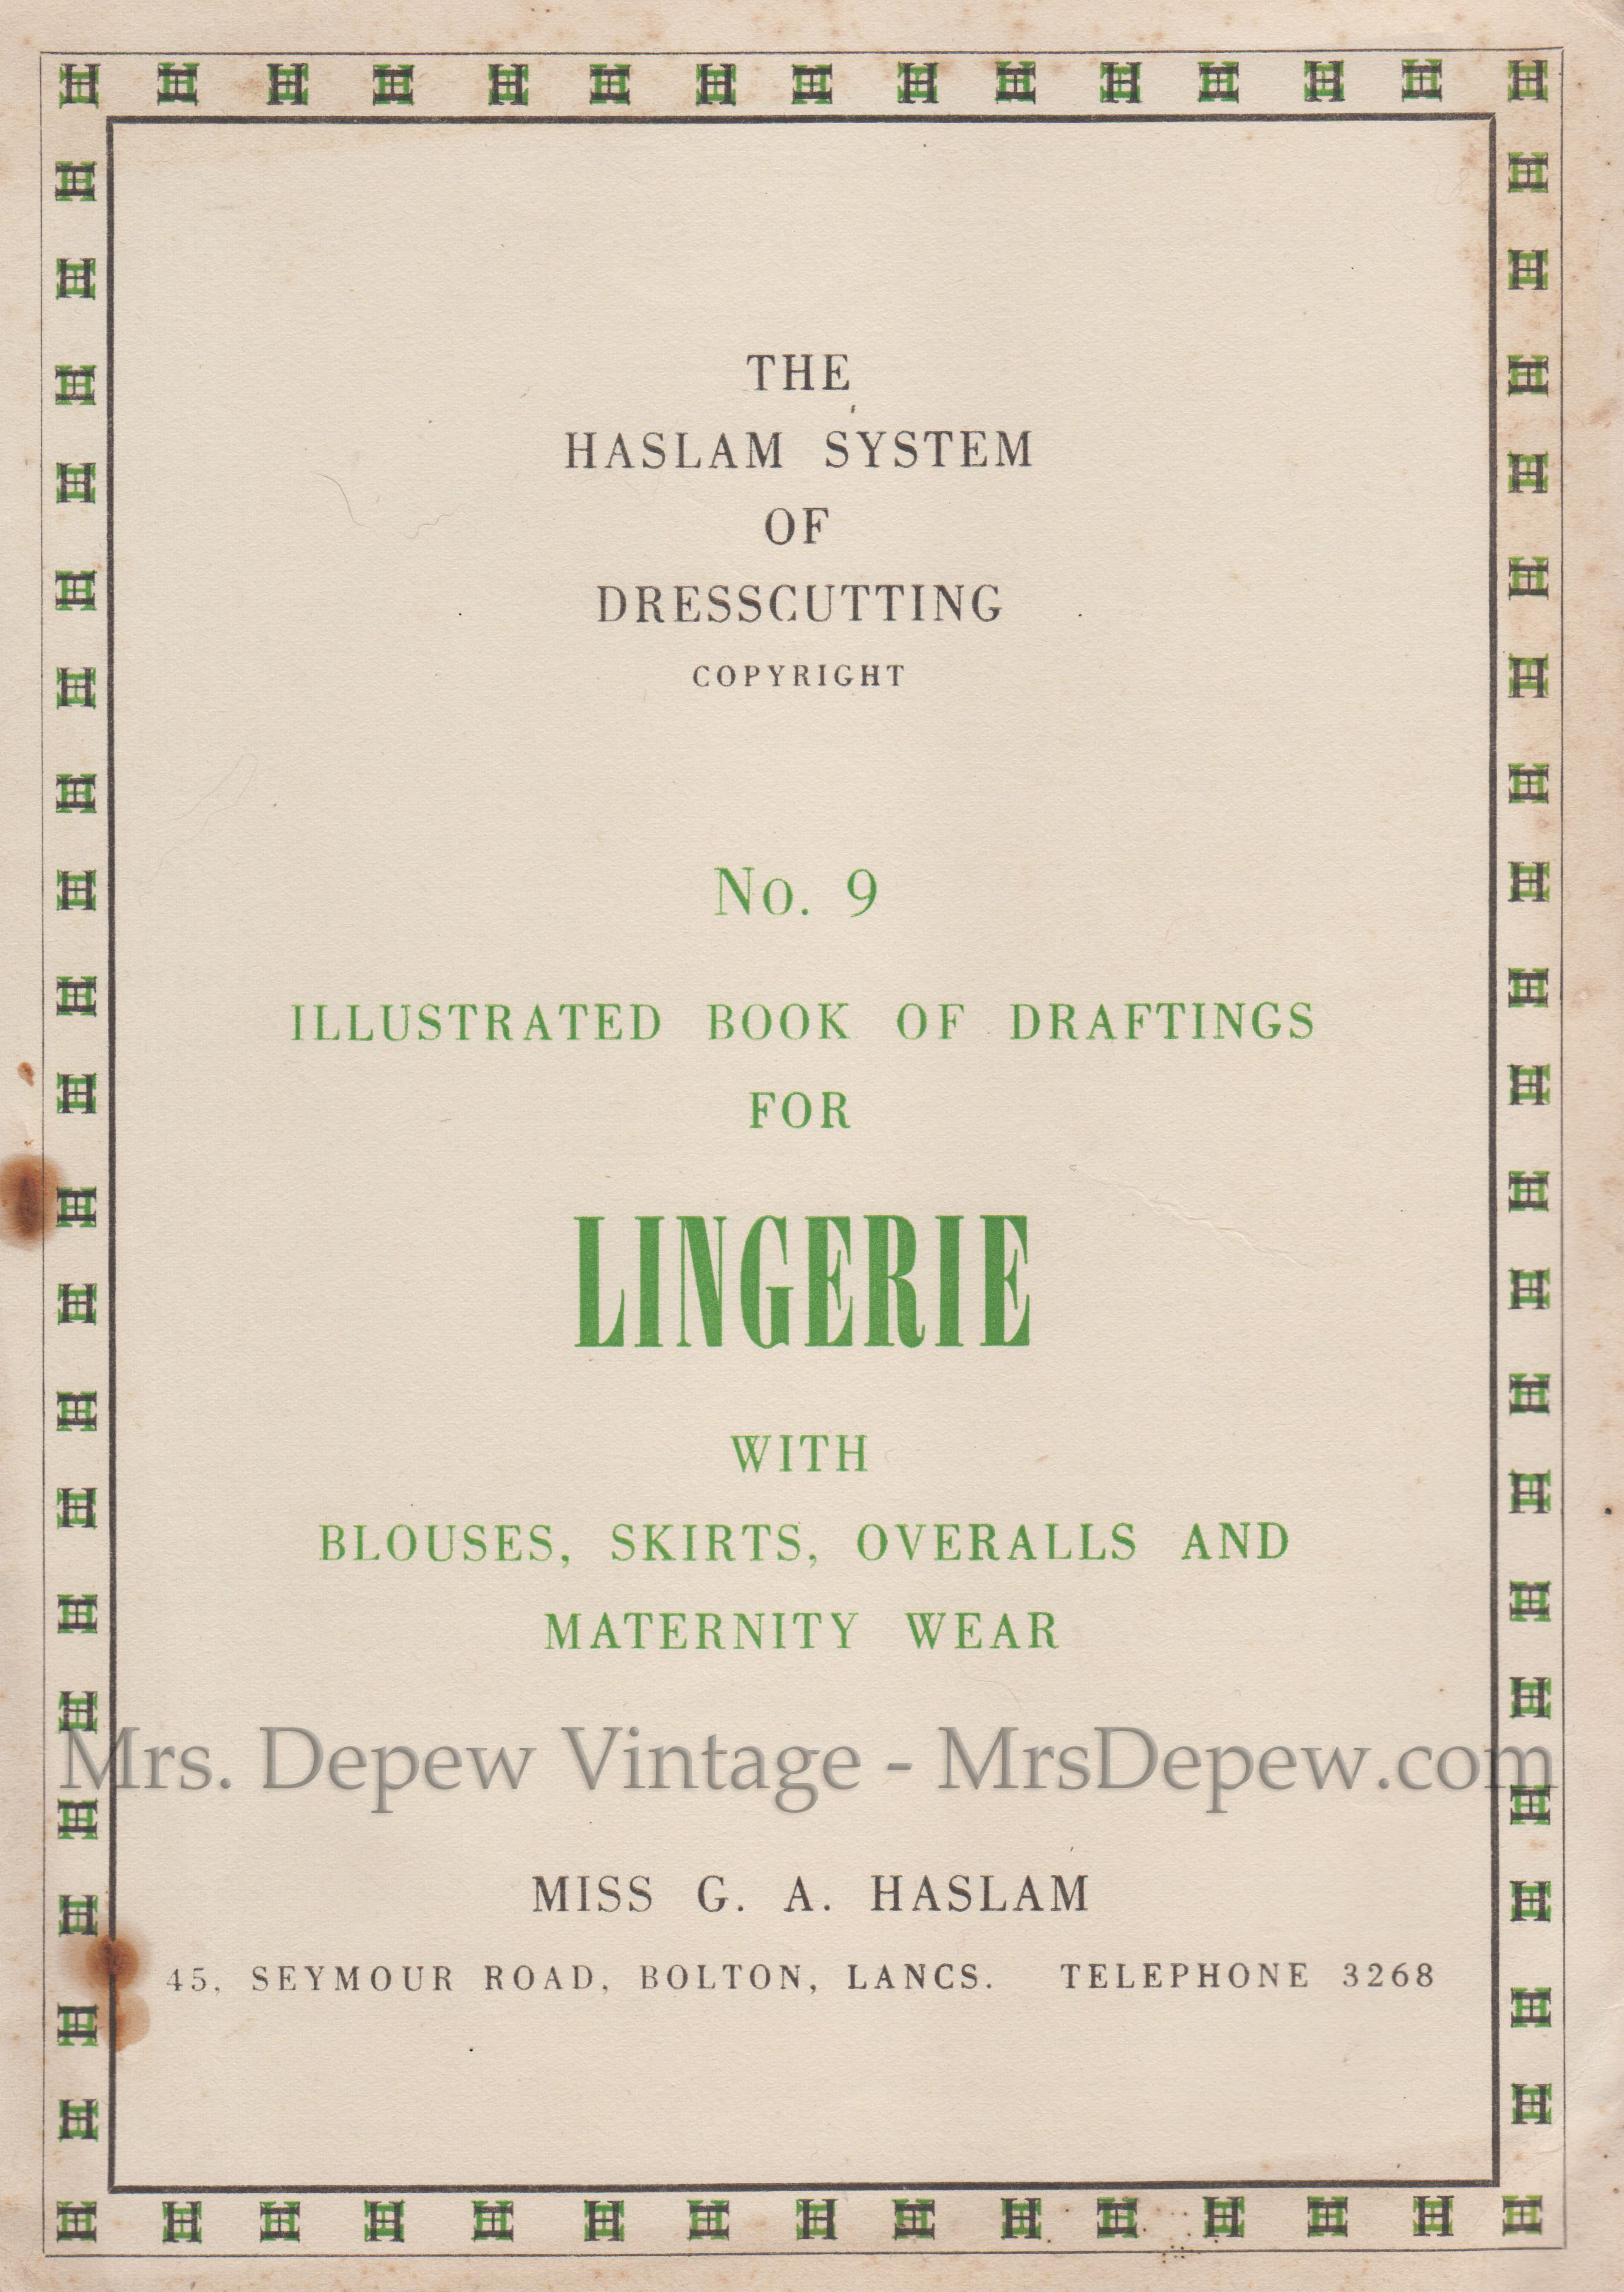 Haslam System of Dresscutting Lingerie No. 9